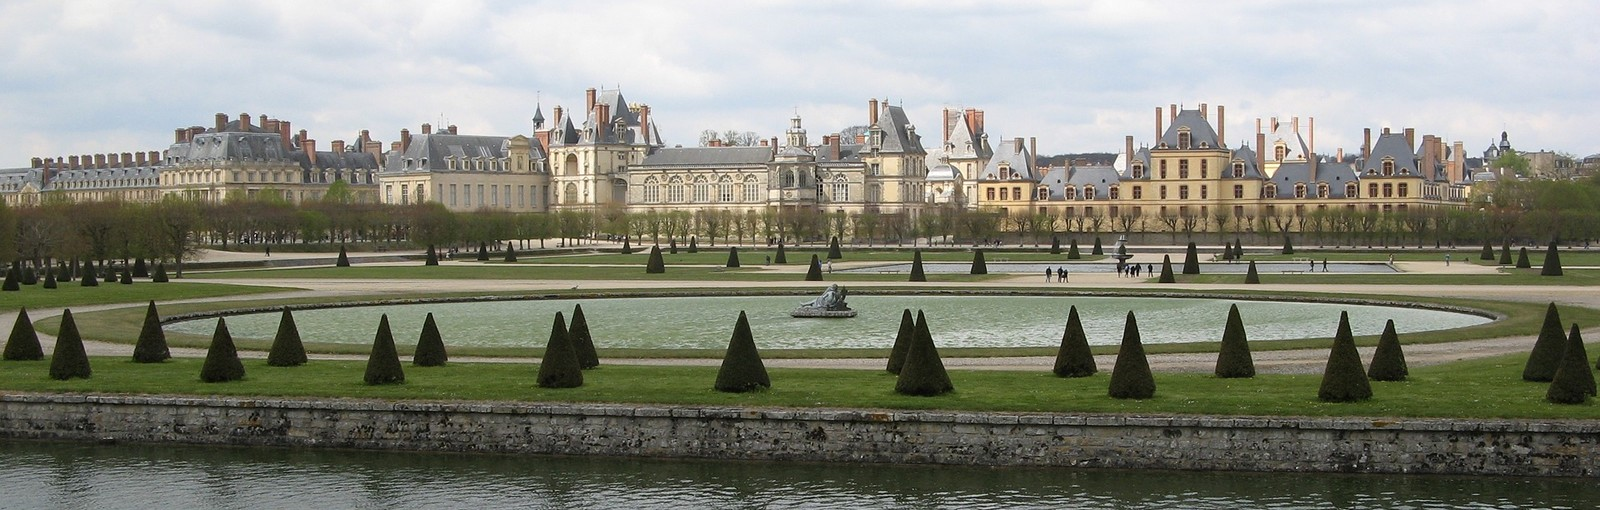 Tours Fontainebleau - Barbizon - Medio-días - Excursiones desde París